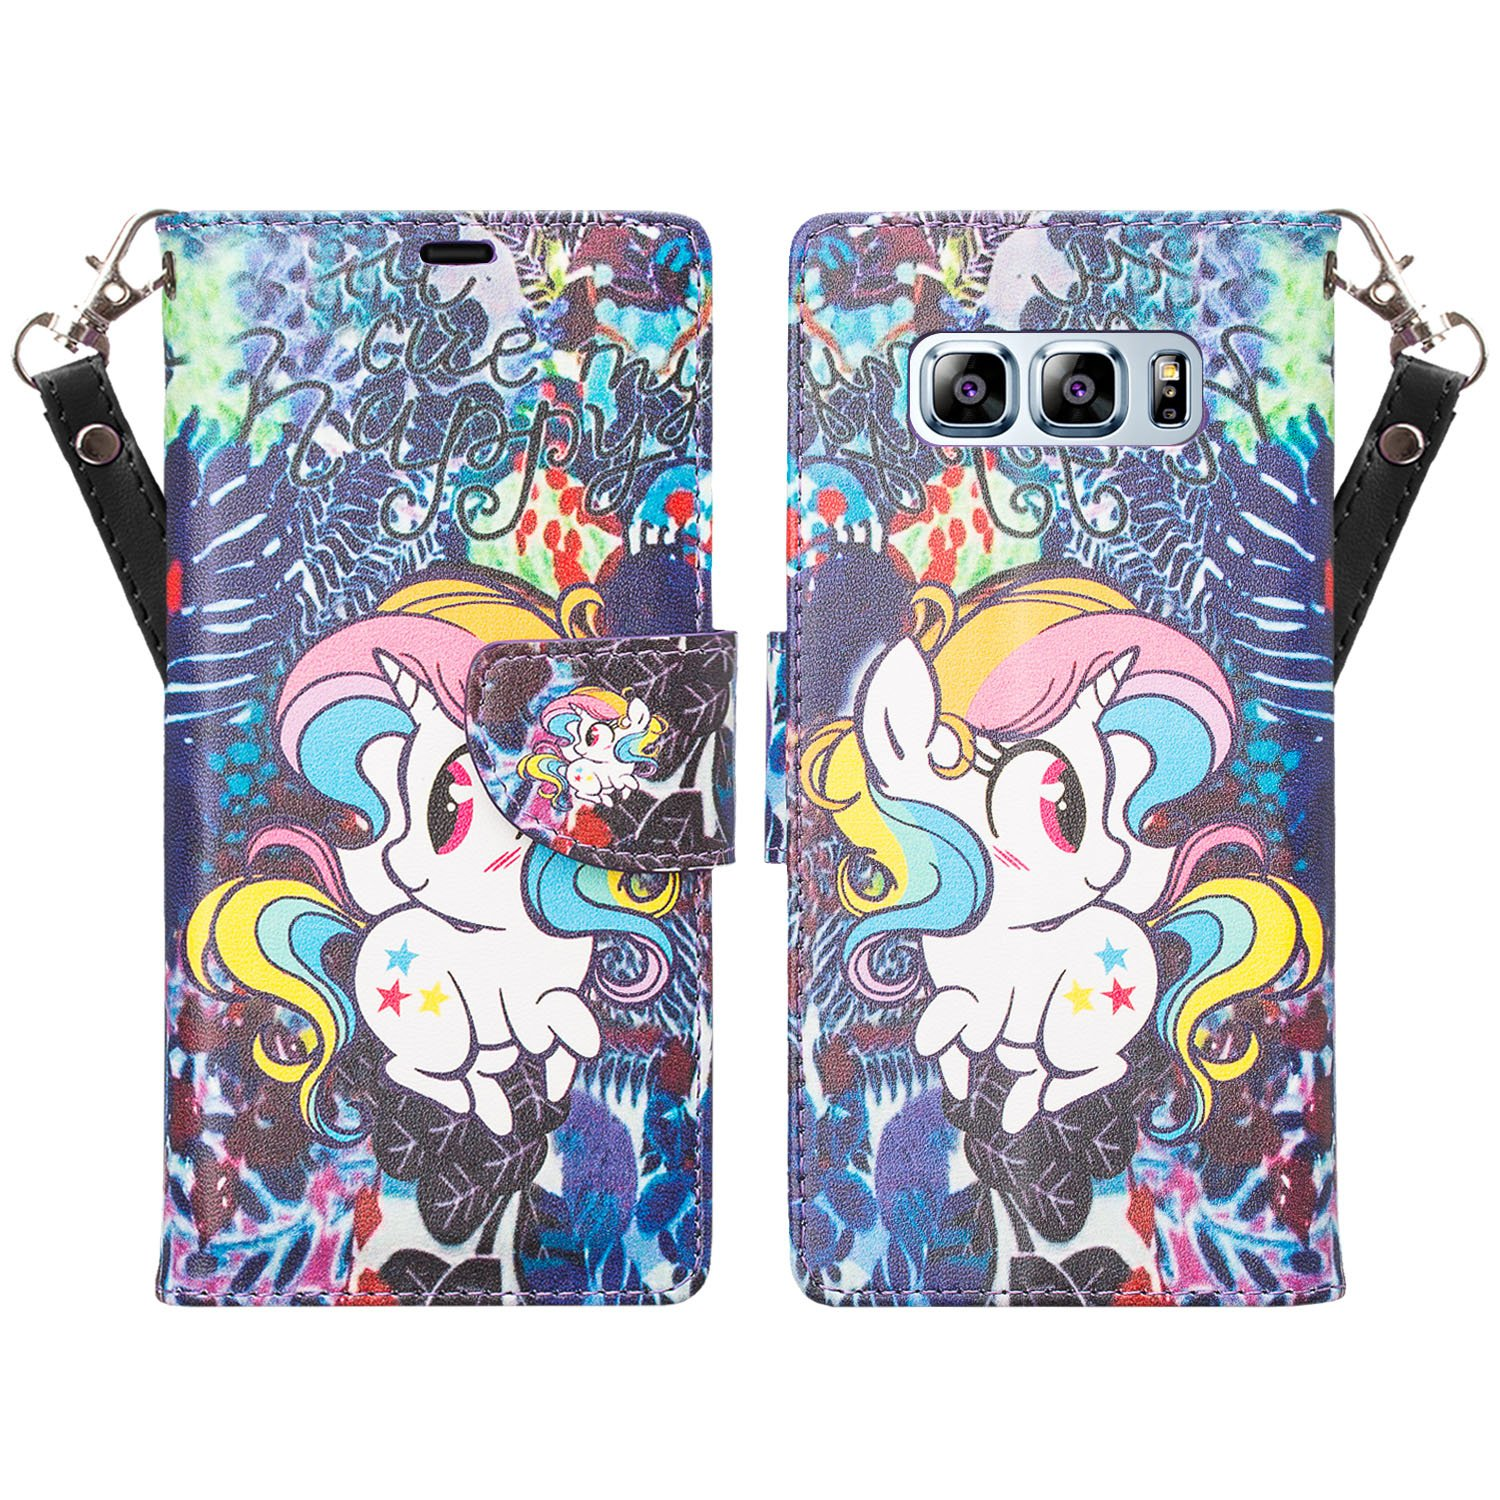 Samsung Galaxy Note 8 Case, Faux Leather Wrist Strap Kickstand Wallet Cover w/ Card Slots - Rainbow Unicorn